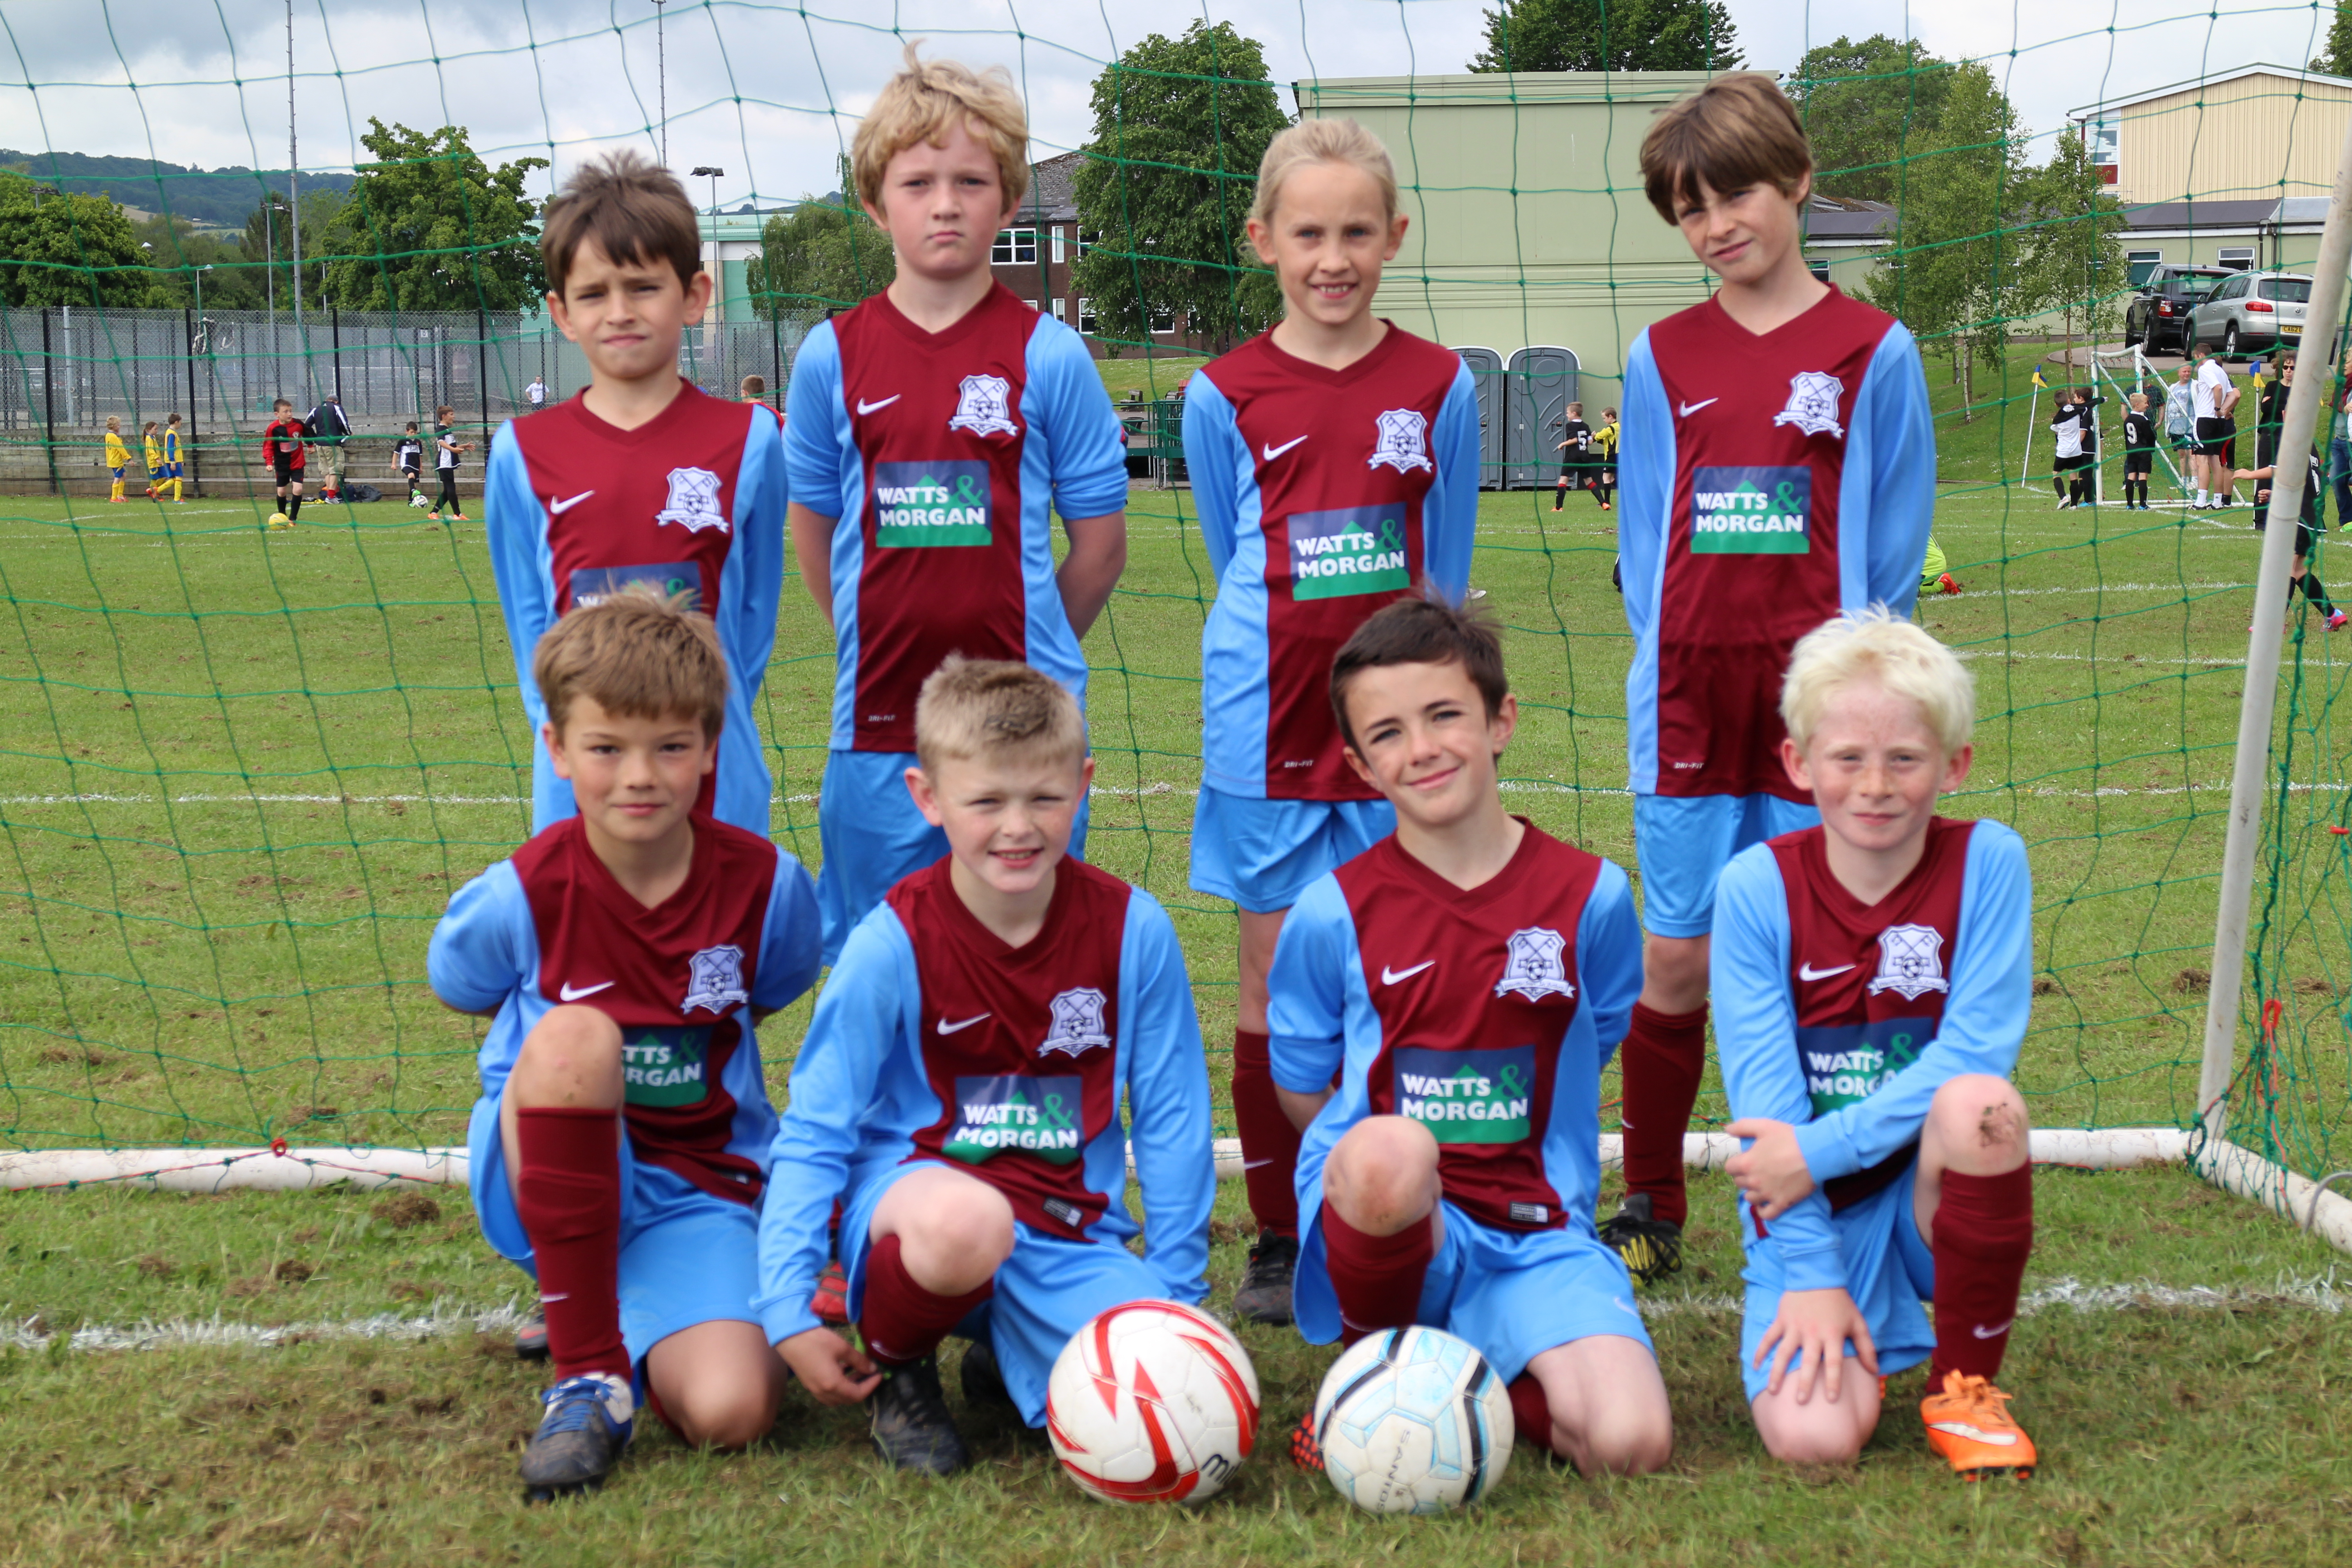 Peterston Super Ely Under 9's